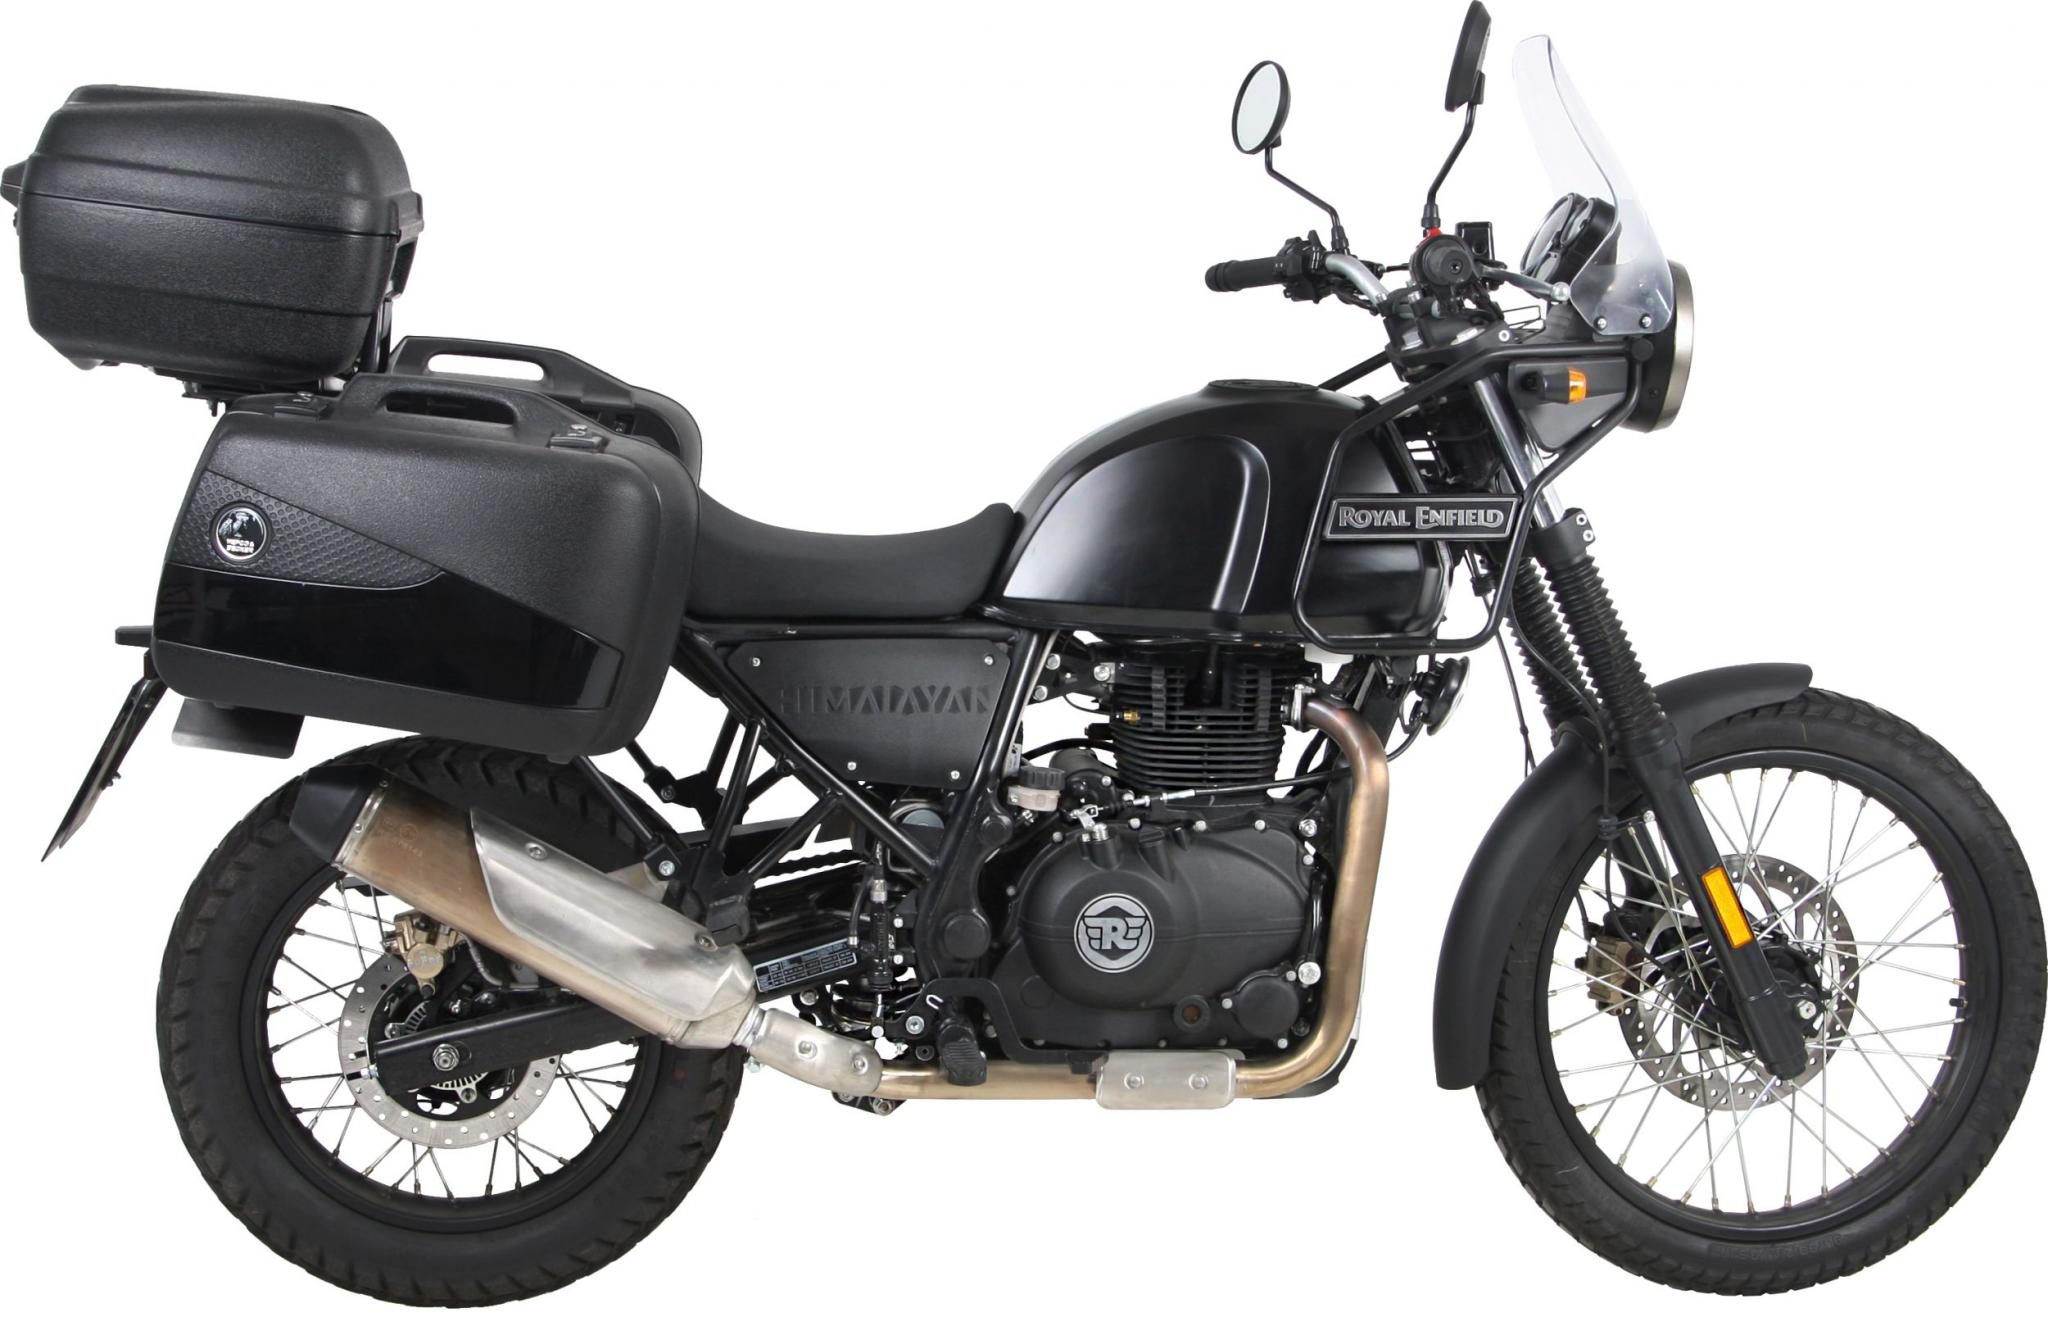 hepco becker zubeh r f r die royal enfield himalayan. Black Bedroom Furniture Sets. Home Design Ideas